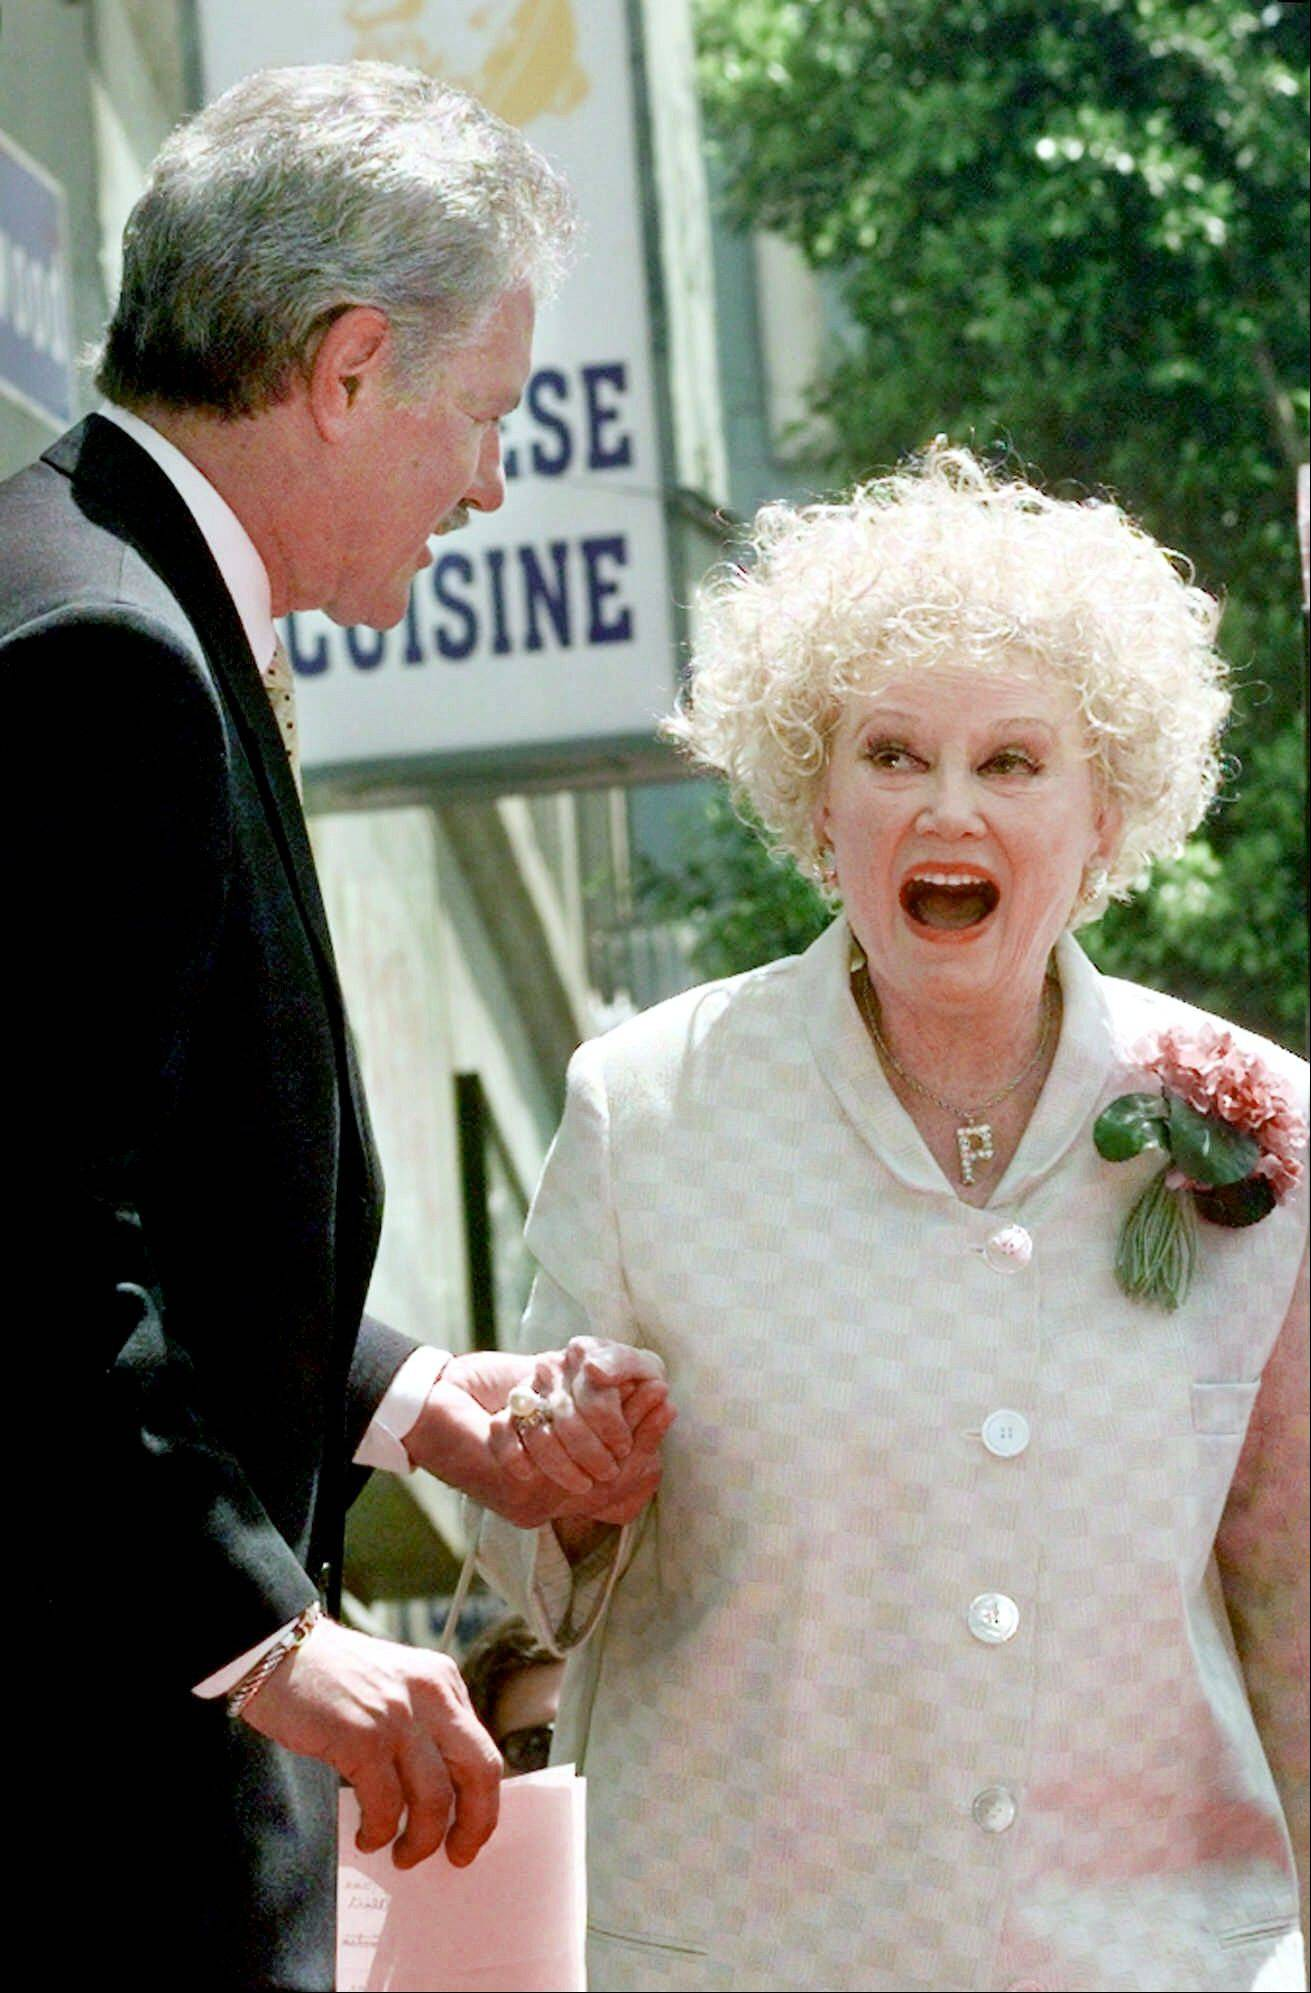 Associated Press/May 17, 1999 Emmy award winning game show host, Alex Trebek greets actress and comedian Phyllis Diller before receiving his newly-dedicated star on the Hollywood Walk of Fame in the Hollywood section of Los Angeles.